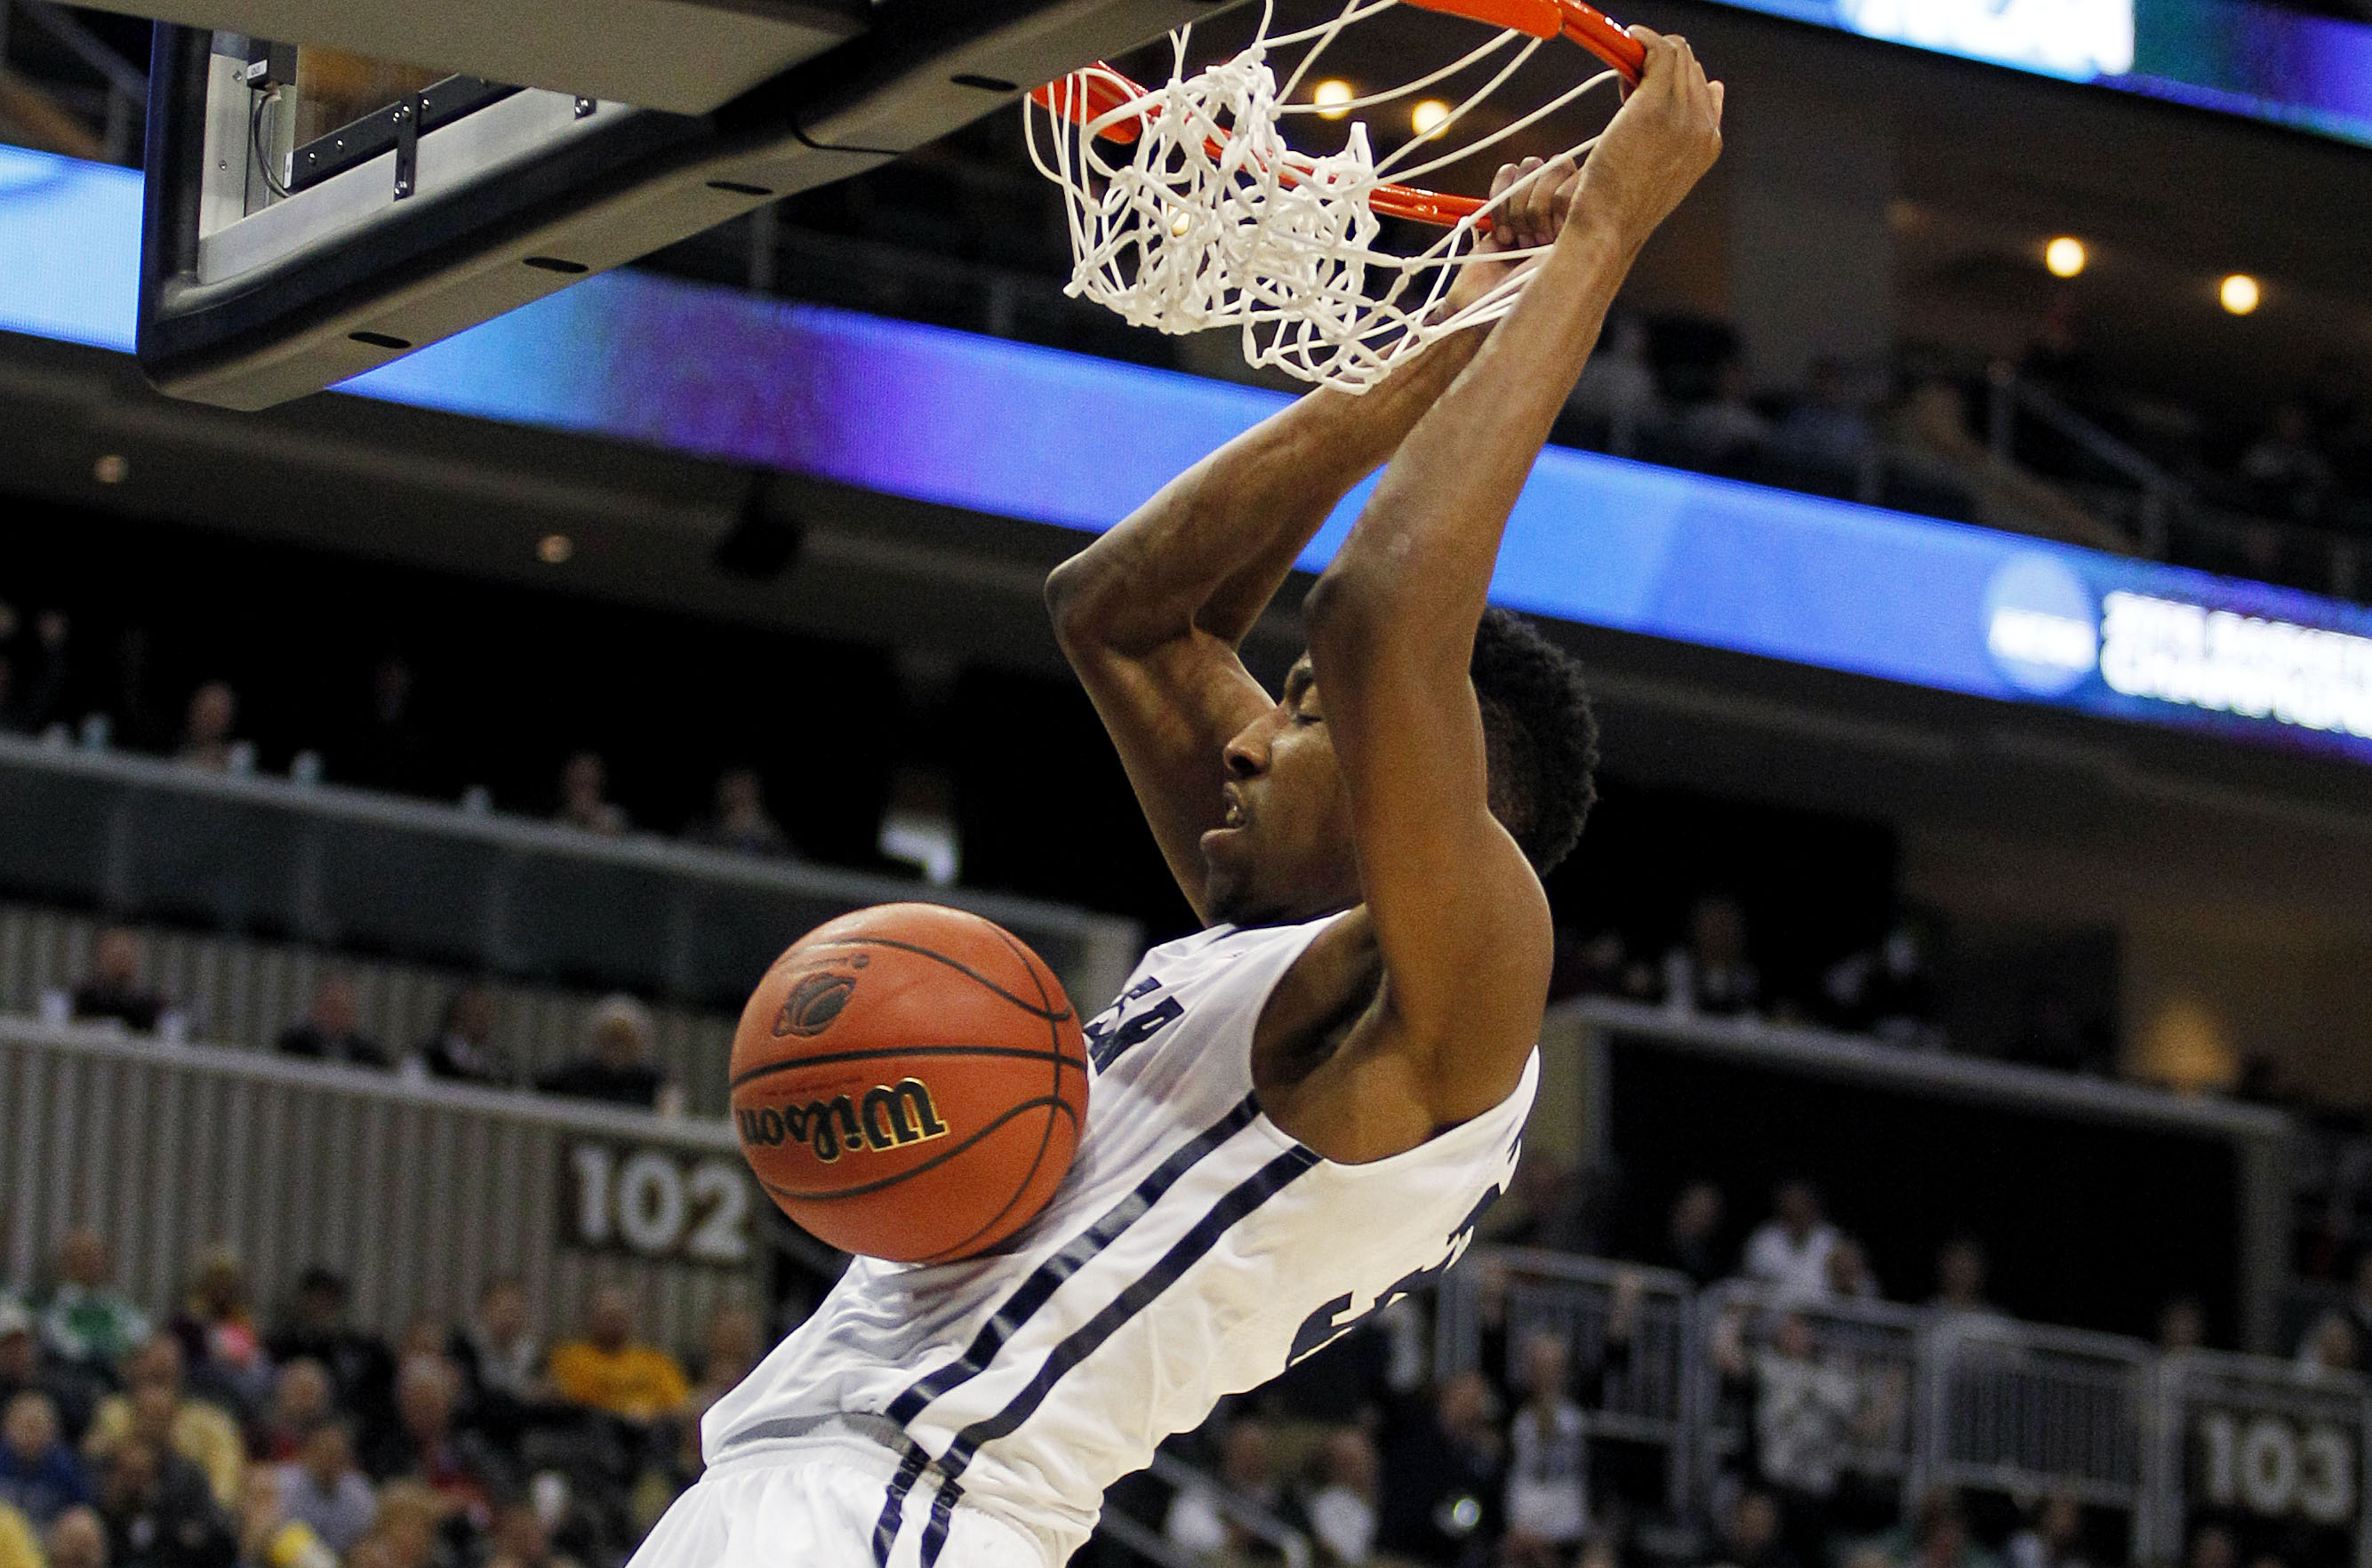 Kameron Woods dunks the ball during the first half of Butler's game with Texas. (Getty)